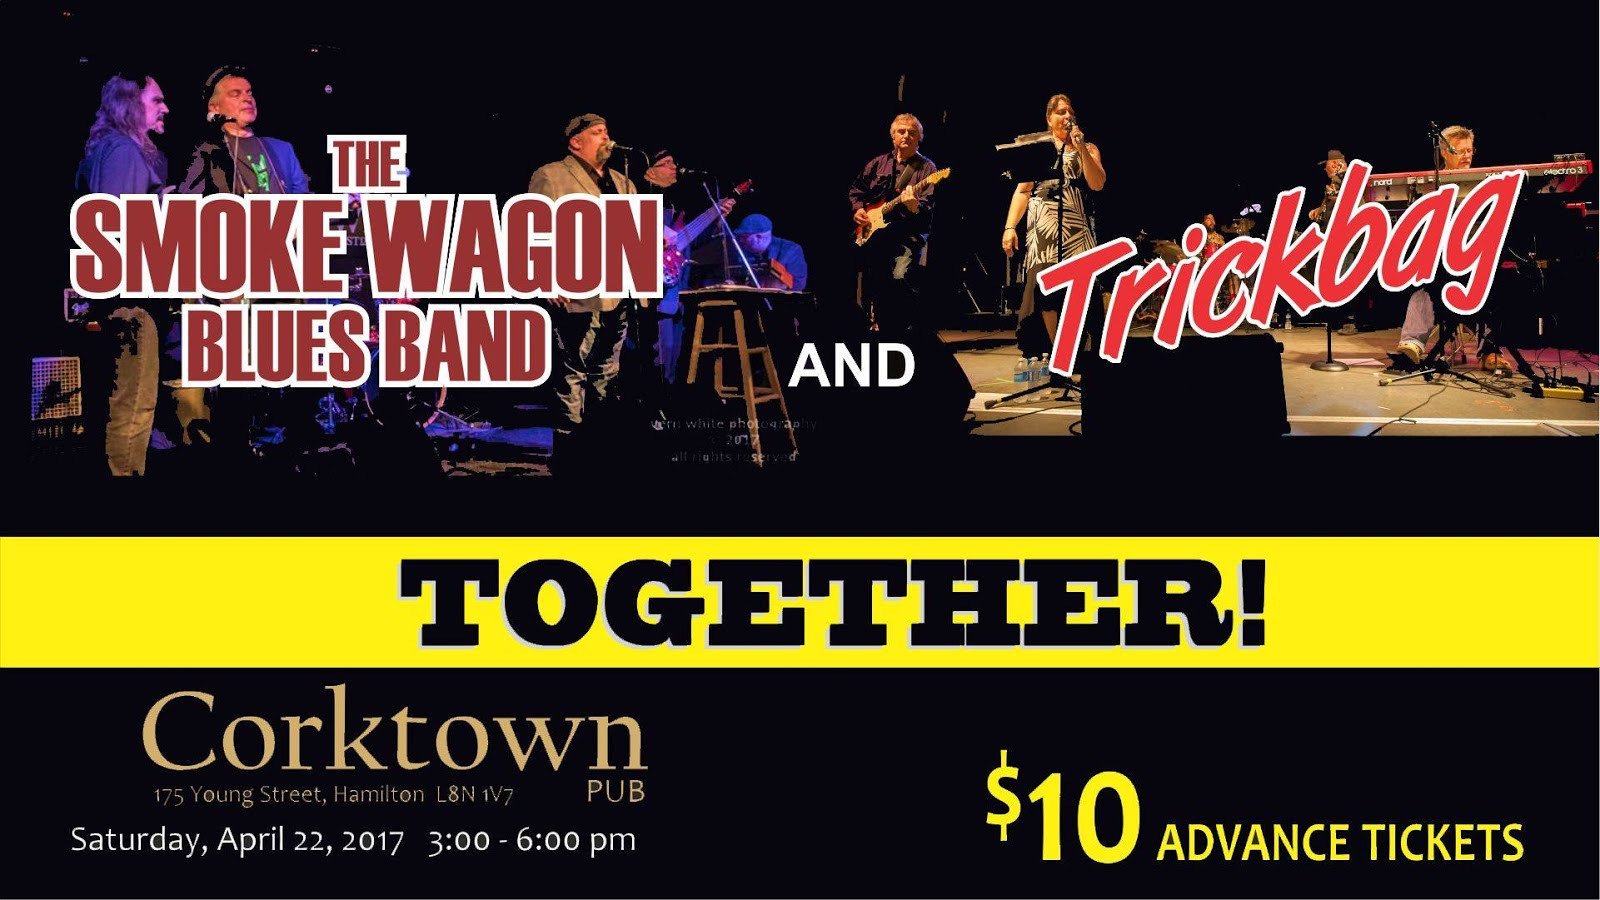 Trickbag & the Smoke Wagon Blues Band @ Corktown